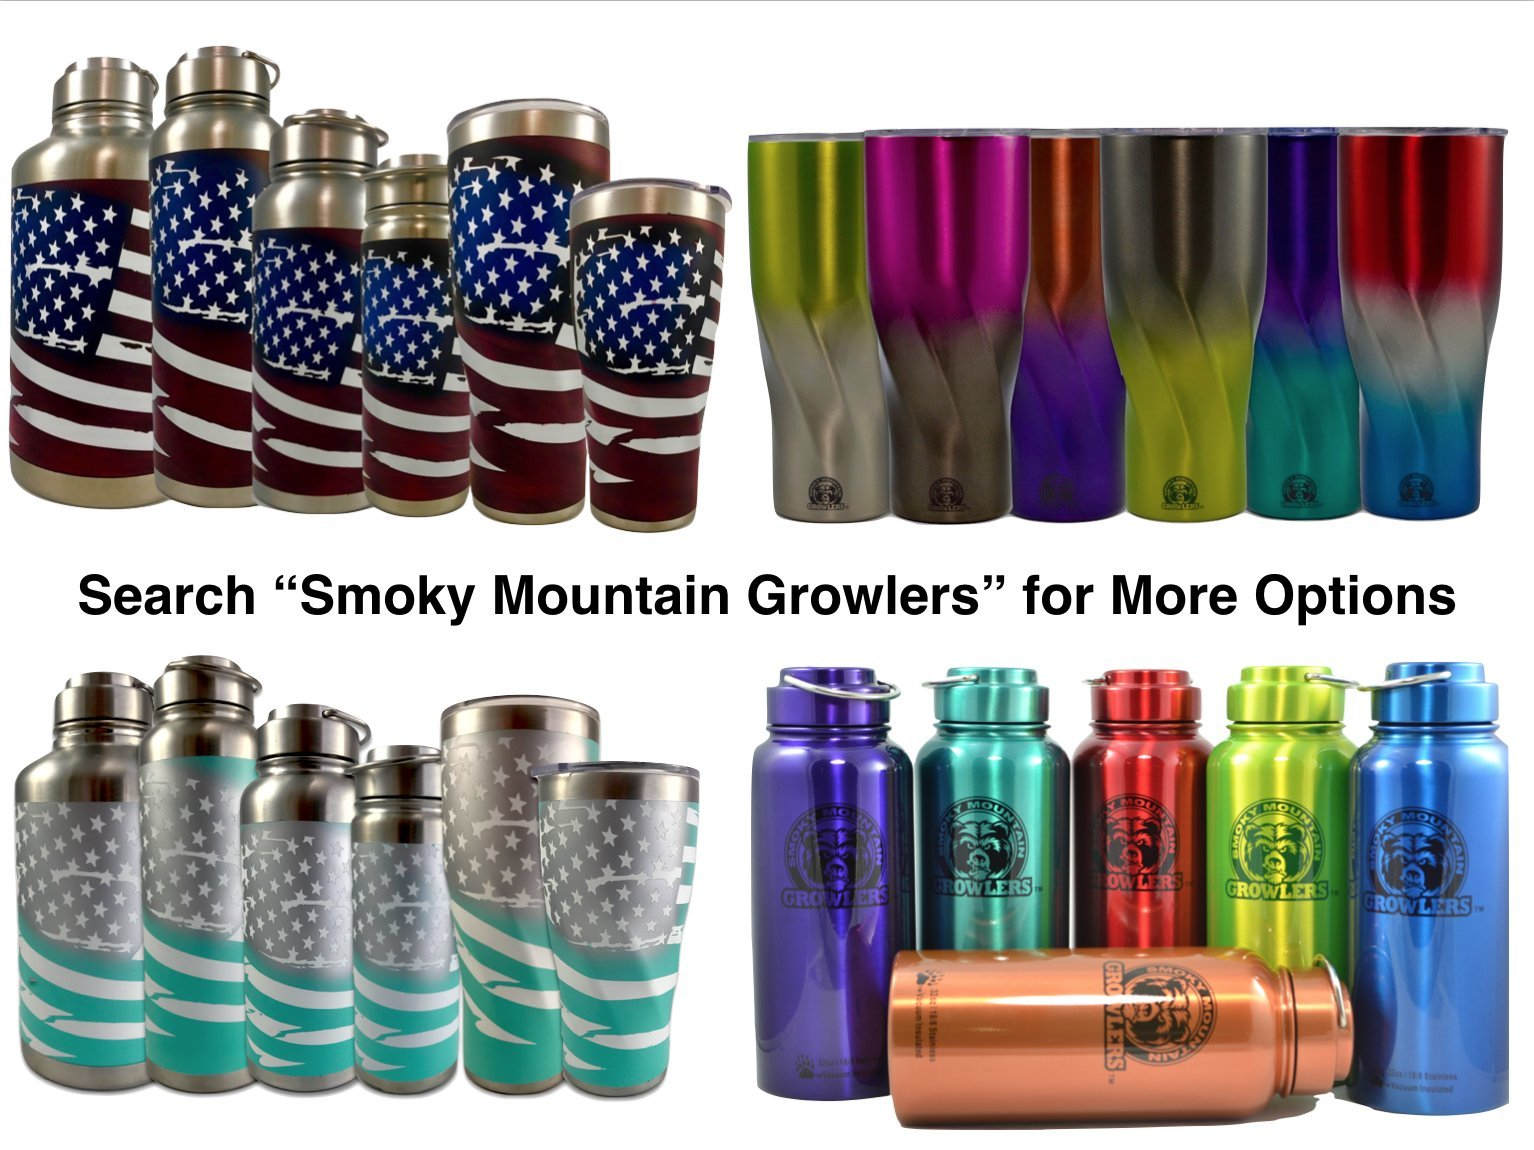 Tiffany Blue Limited Edition GrowlerGal Cerakote Freedom Growlers & Tumblers by Smoky Mountain Growlers (64 ounce Bottle) by Smoky Mountain Growlers